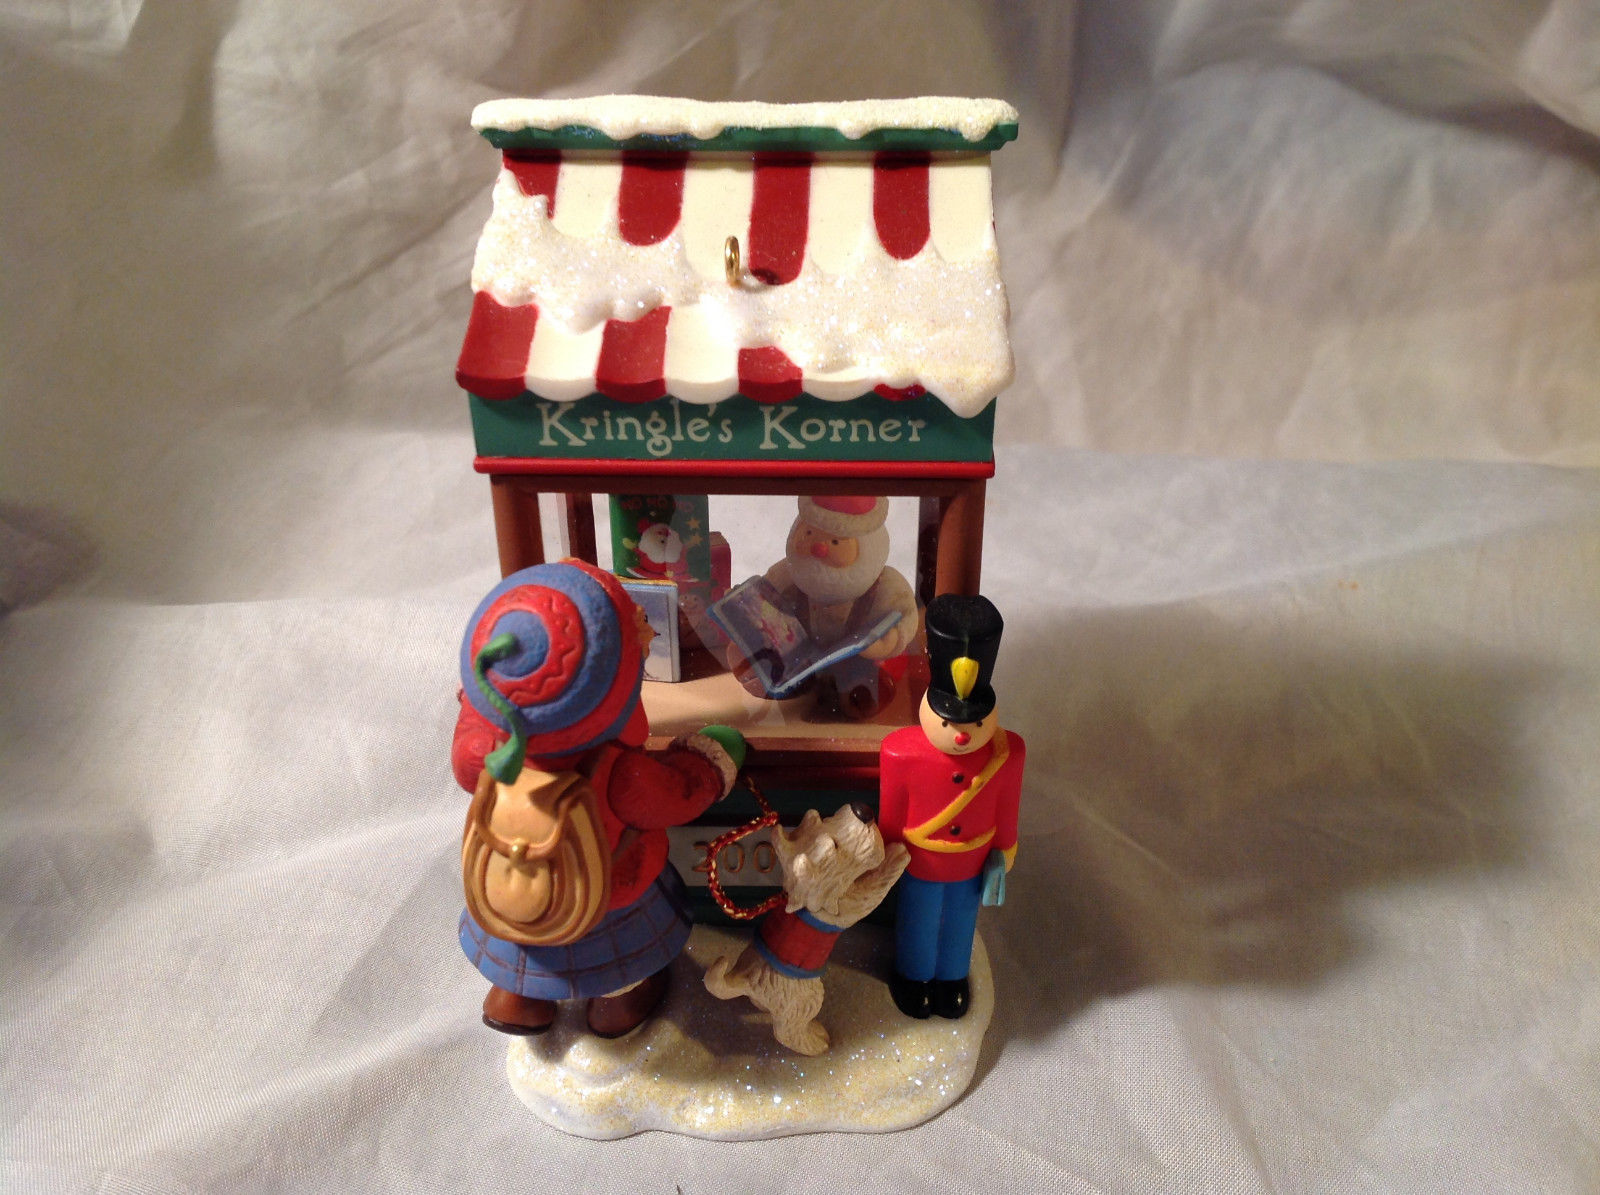 Hallmark Kringle's Korner Christmas Windows 2008 Keepsake Series Original Box